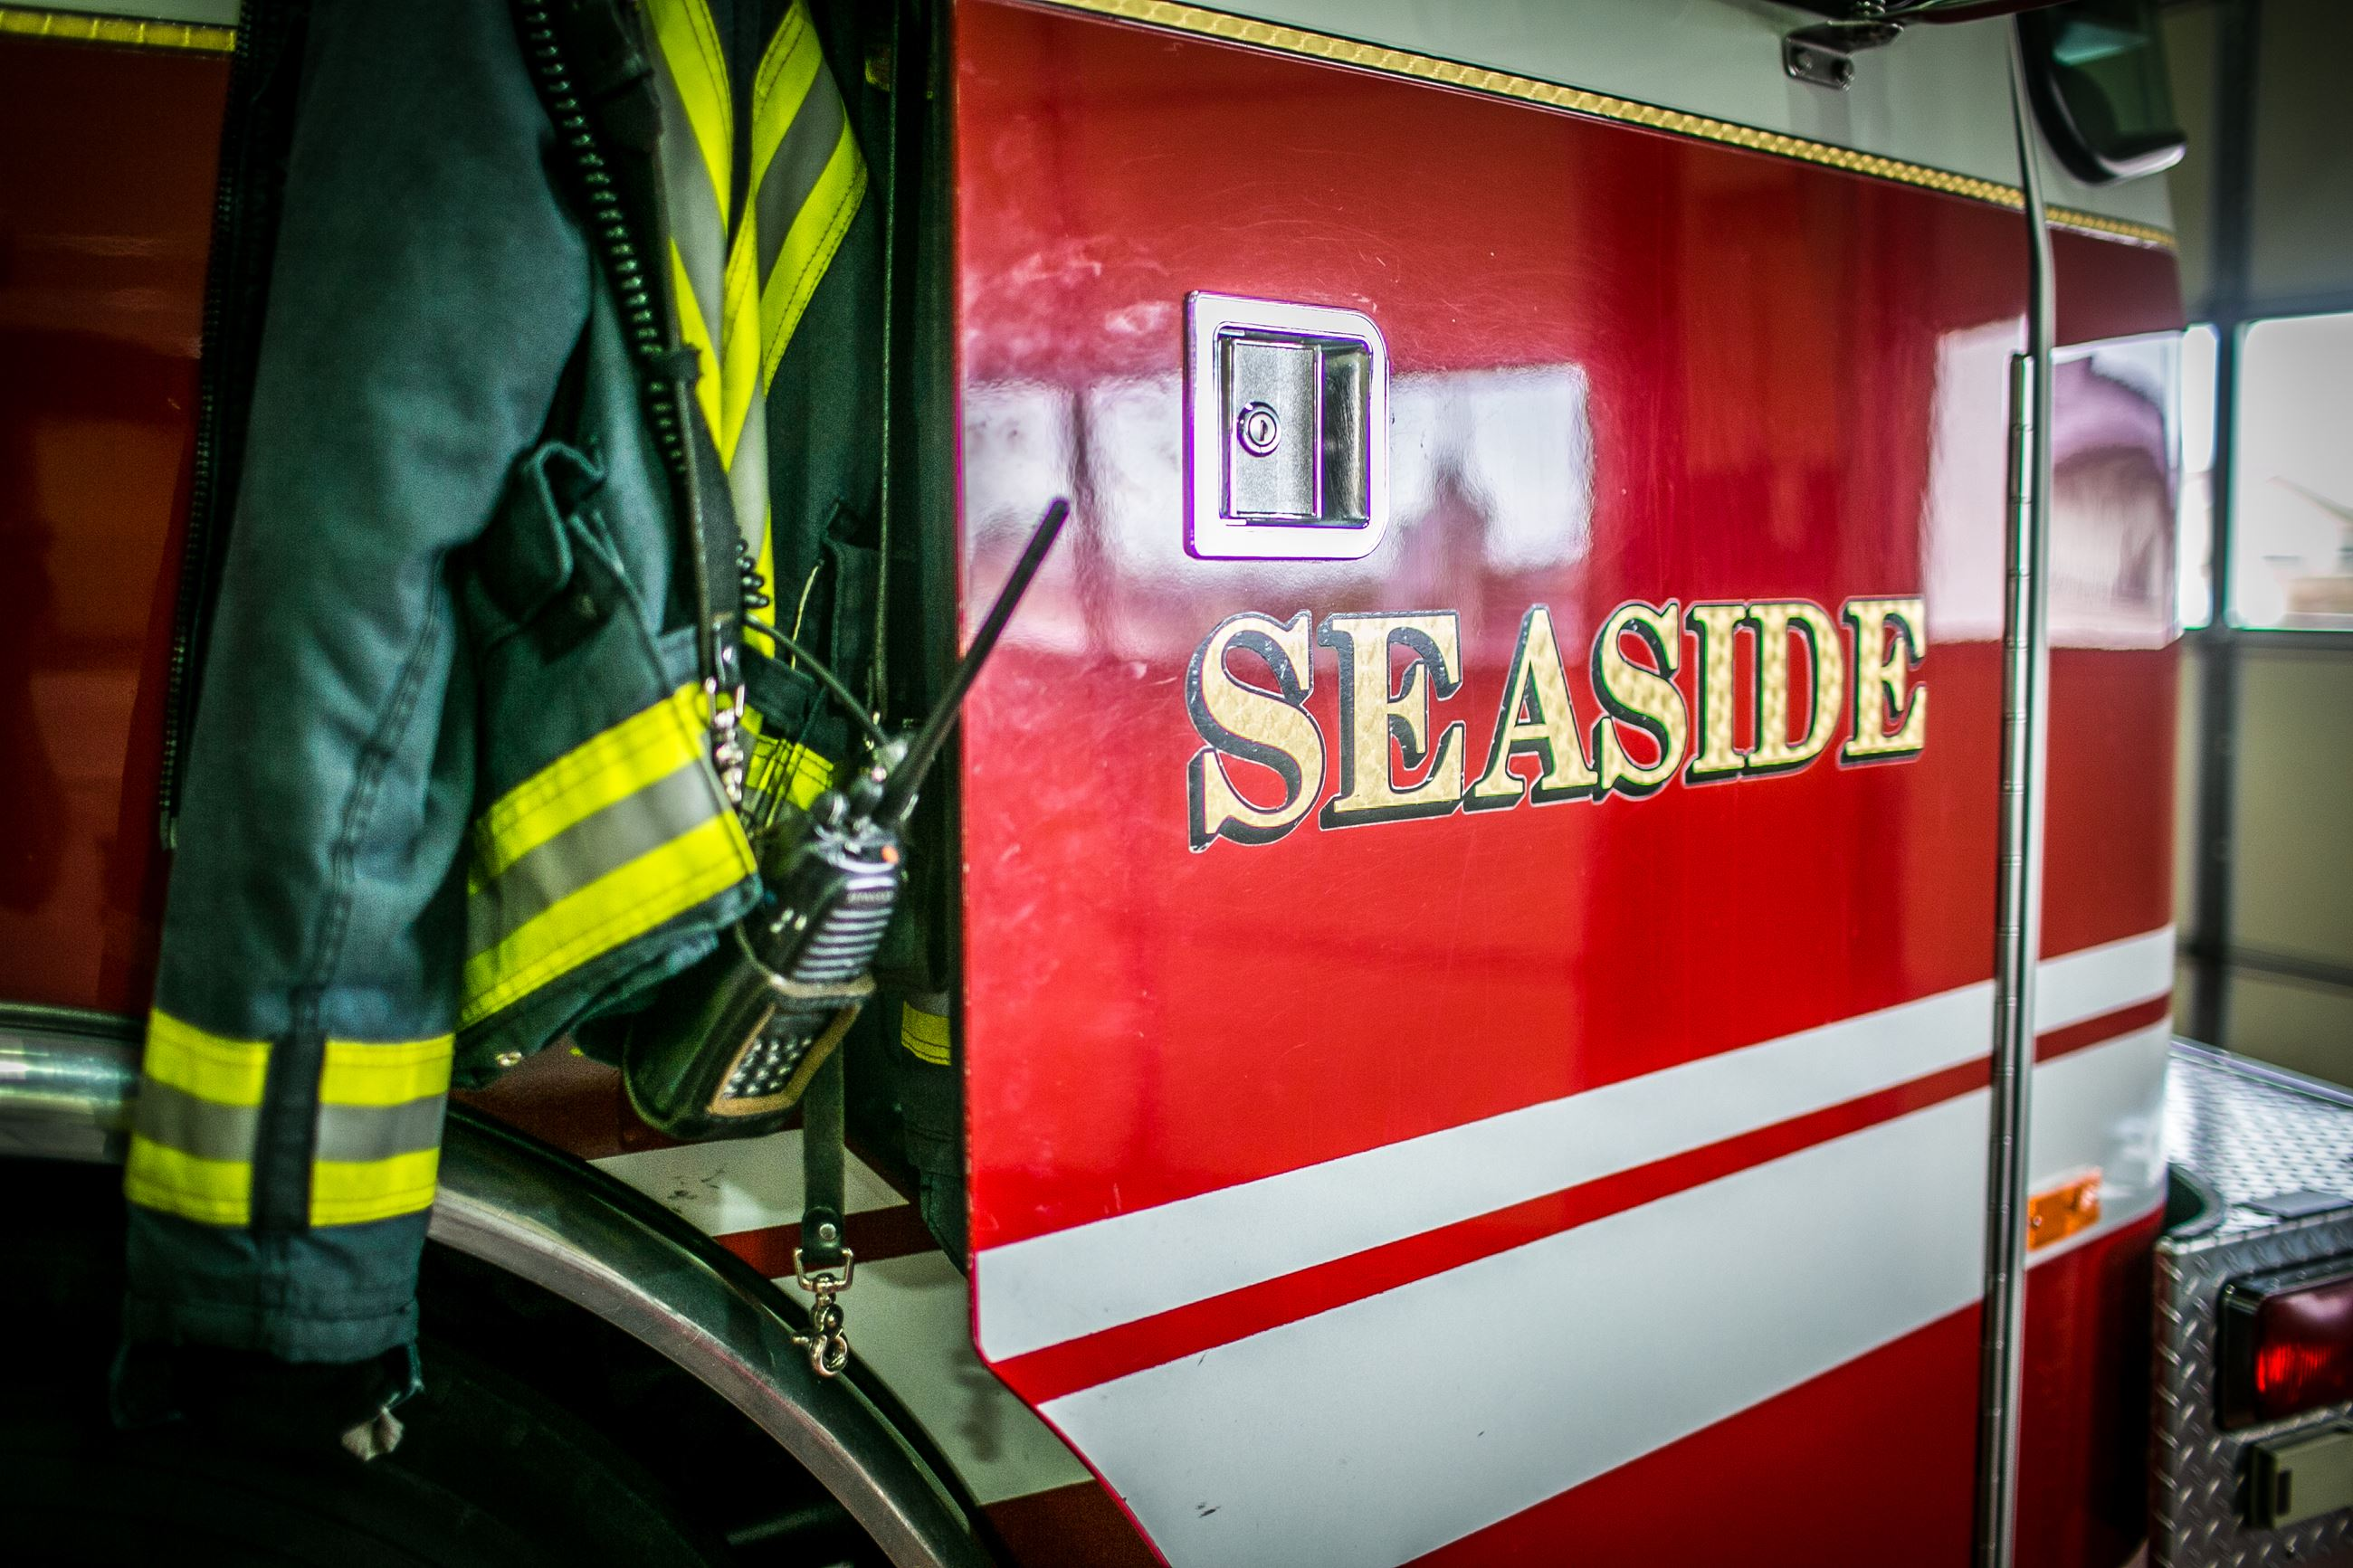 Seaside Fire Department engine door and hanging turnout jacket and radio